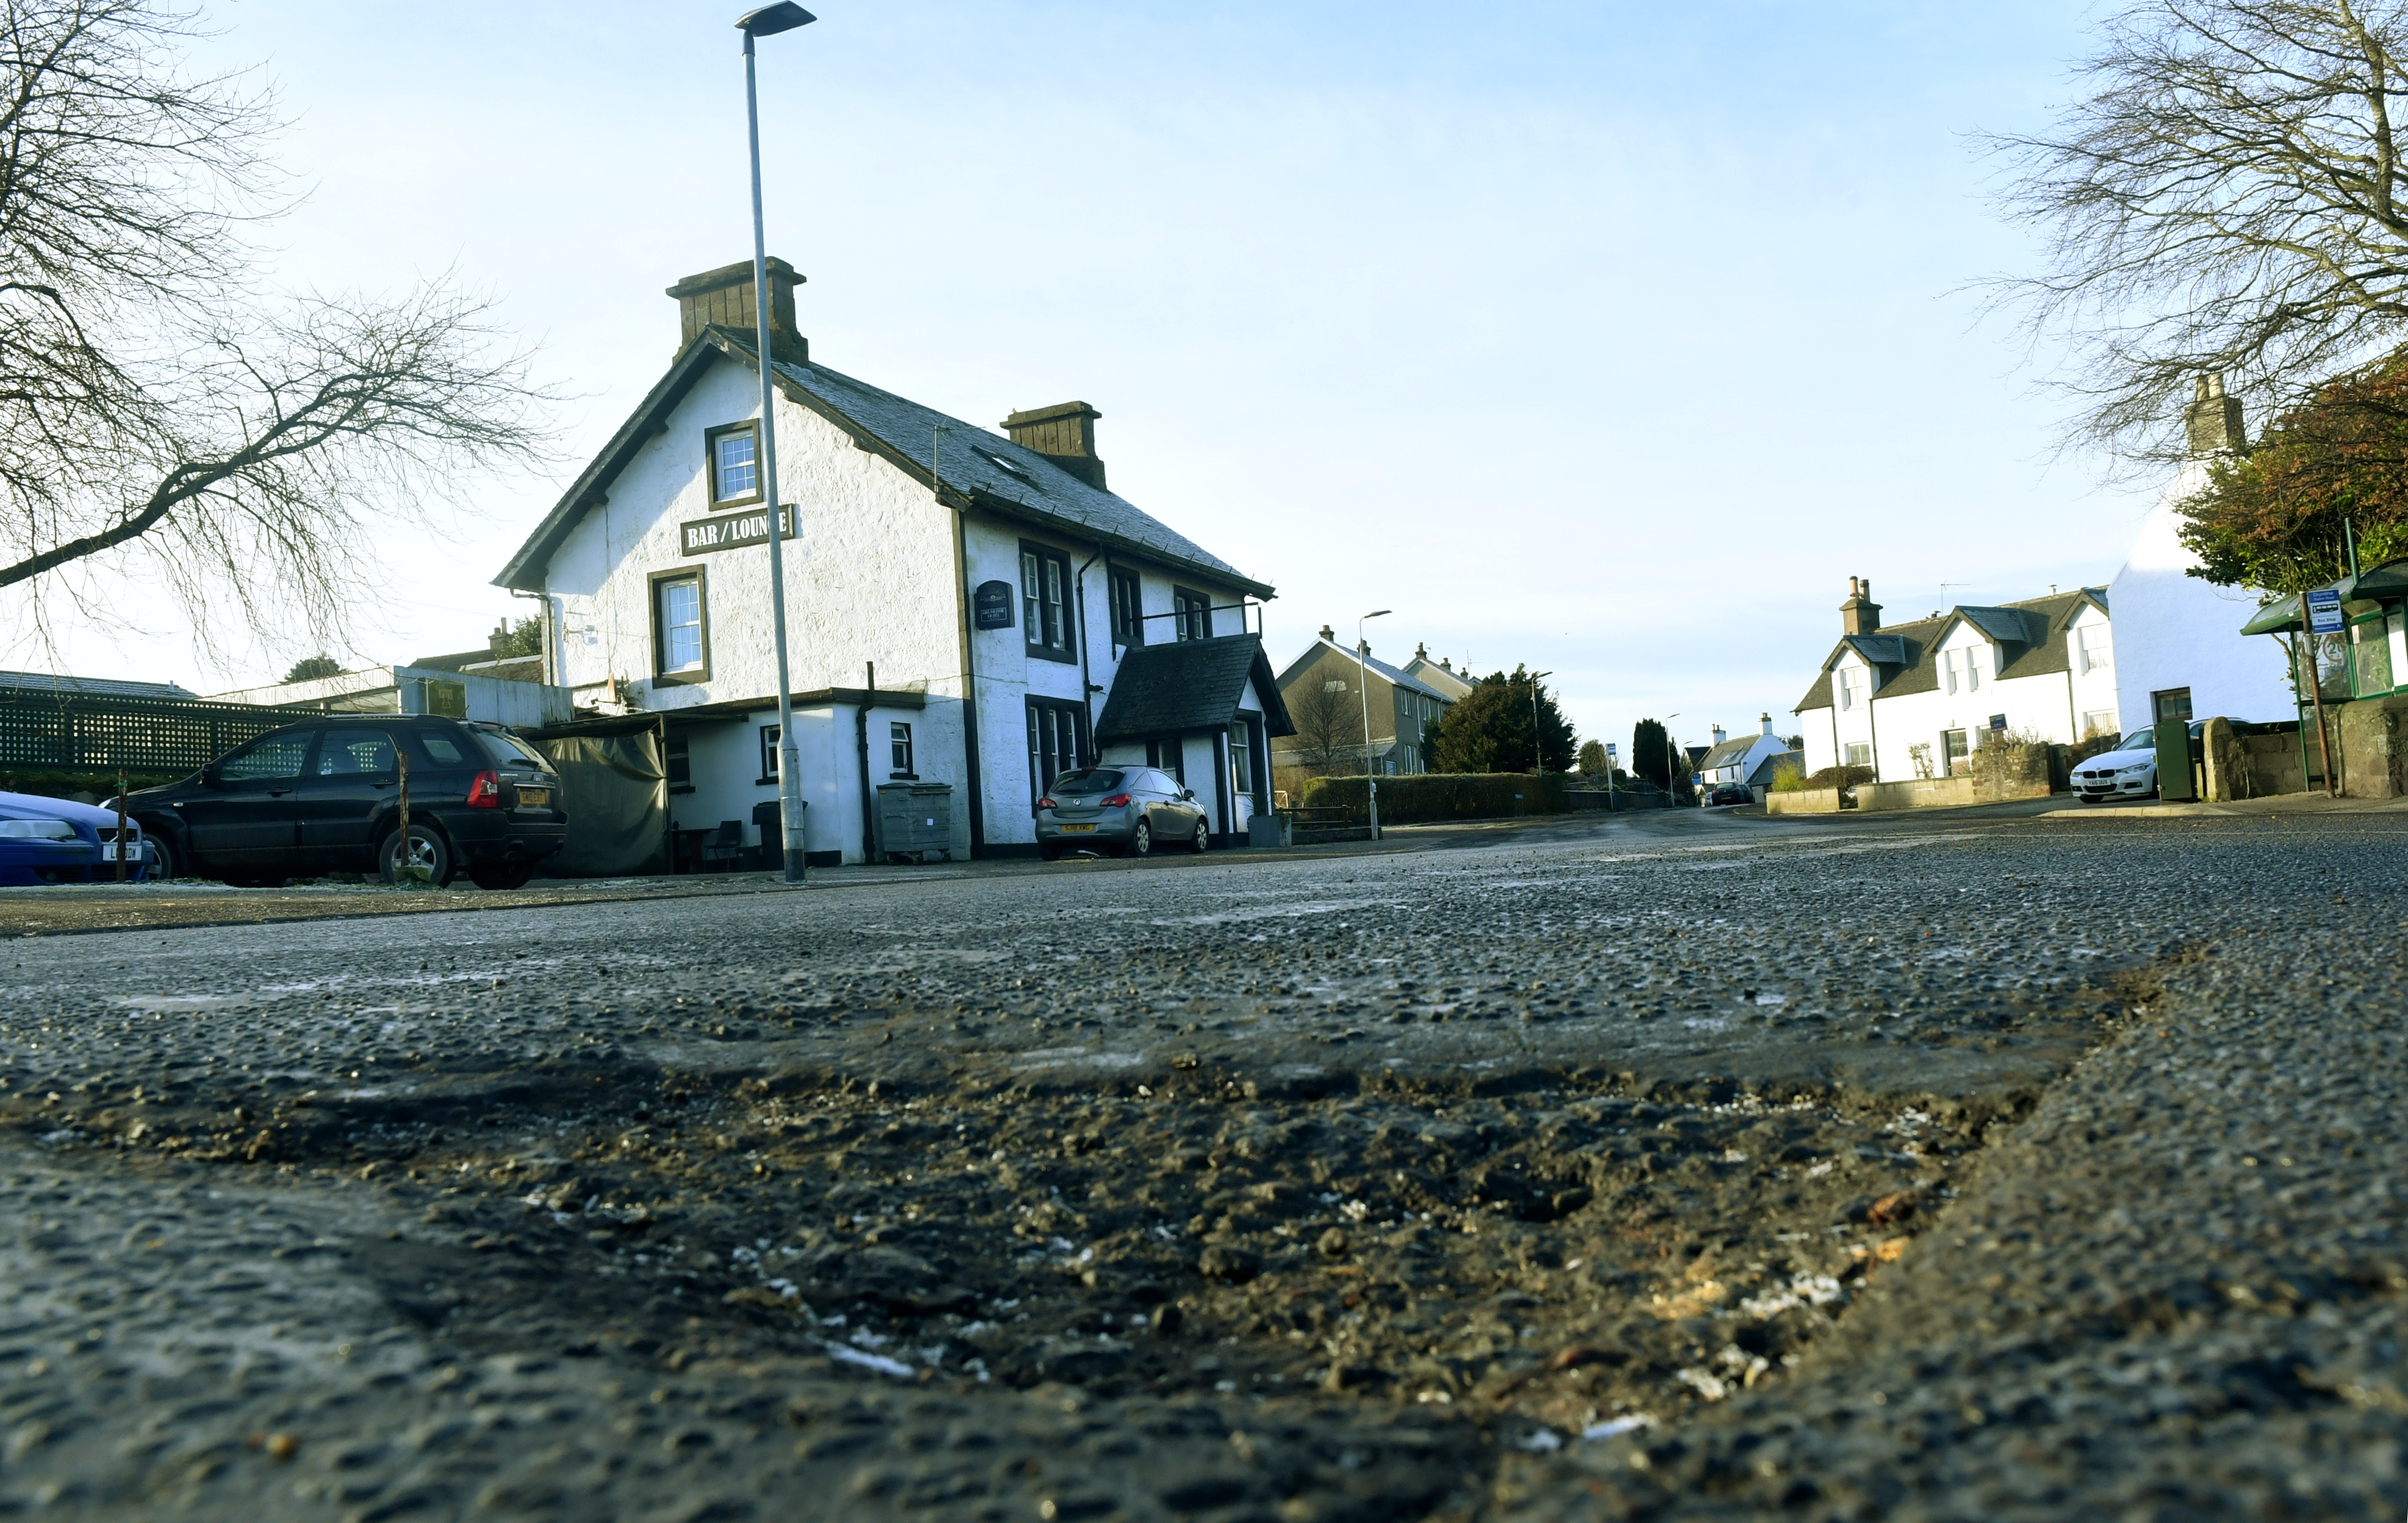 One of the potholes in Drumlithie